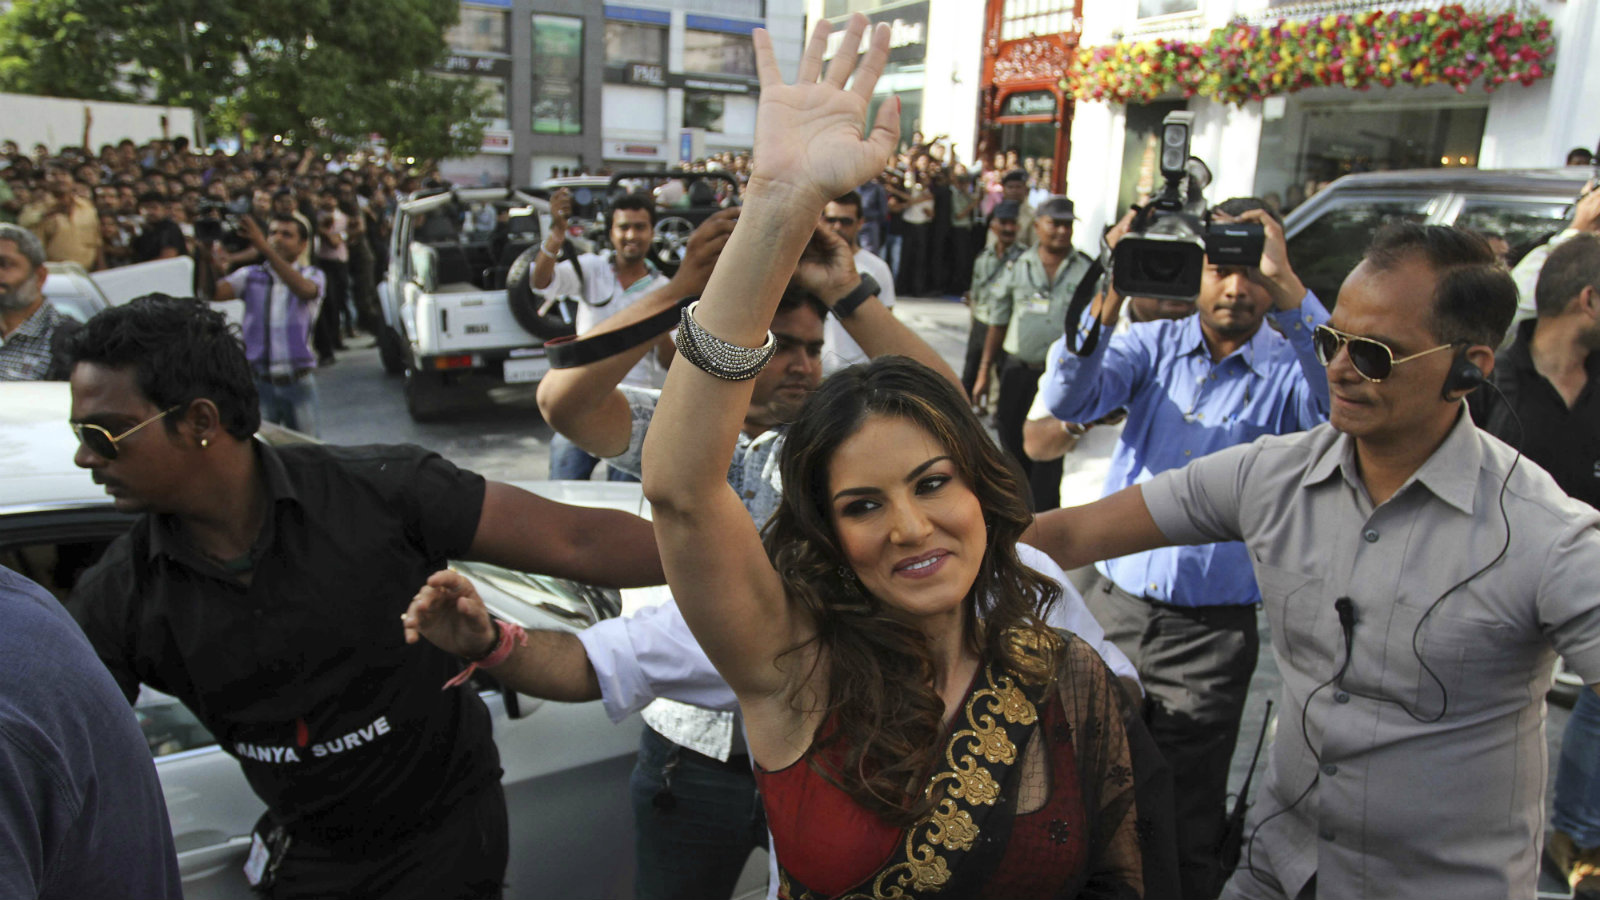 Film star Sunny Leone waves to fans after a press conference supporting her upcoming movie 'Shootout At Wadala' in Ahmadabad, India, Friday, April 26, 2013. The film based on growth of organized crime in late 70's and early 80's of Mumbai, will be released on May 3, according to a press release.